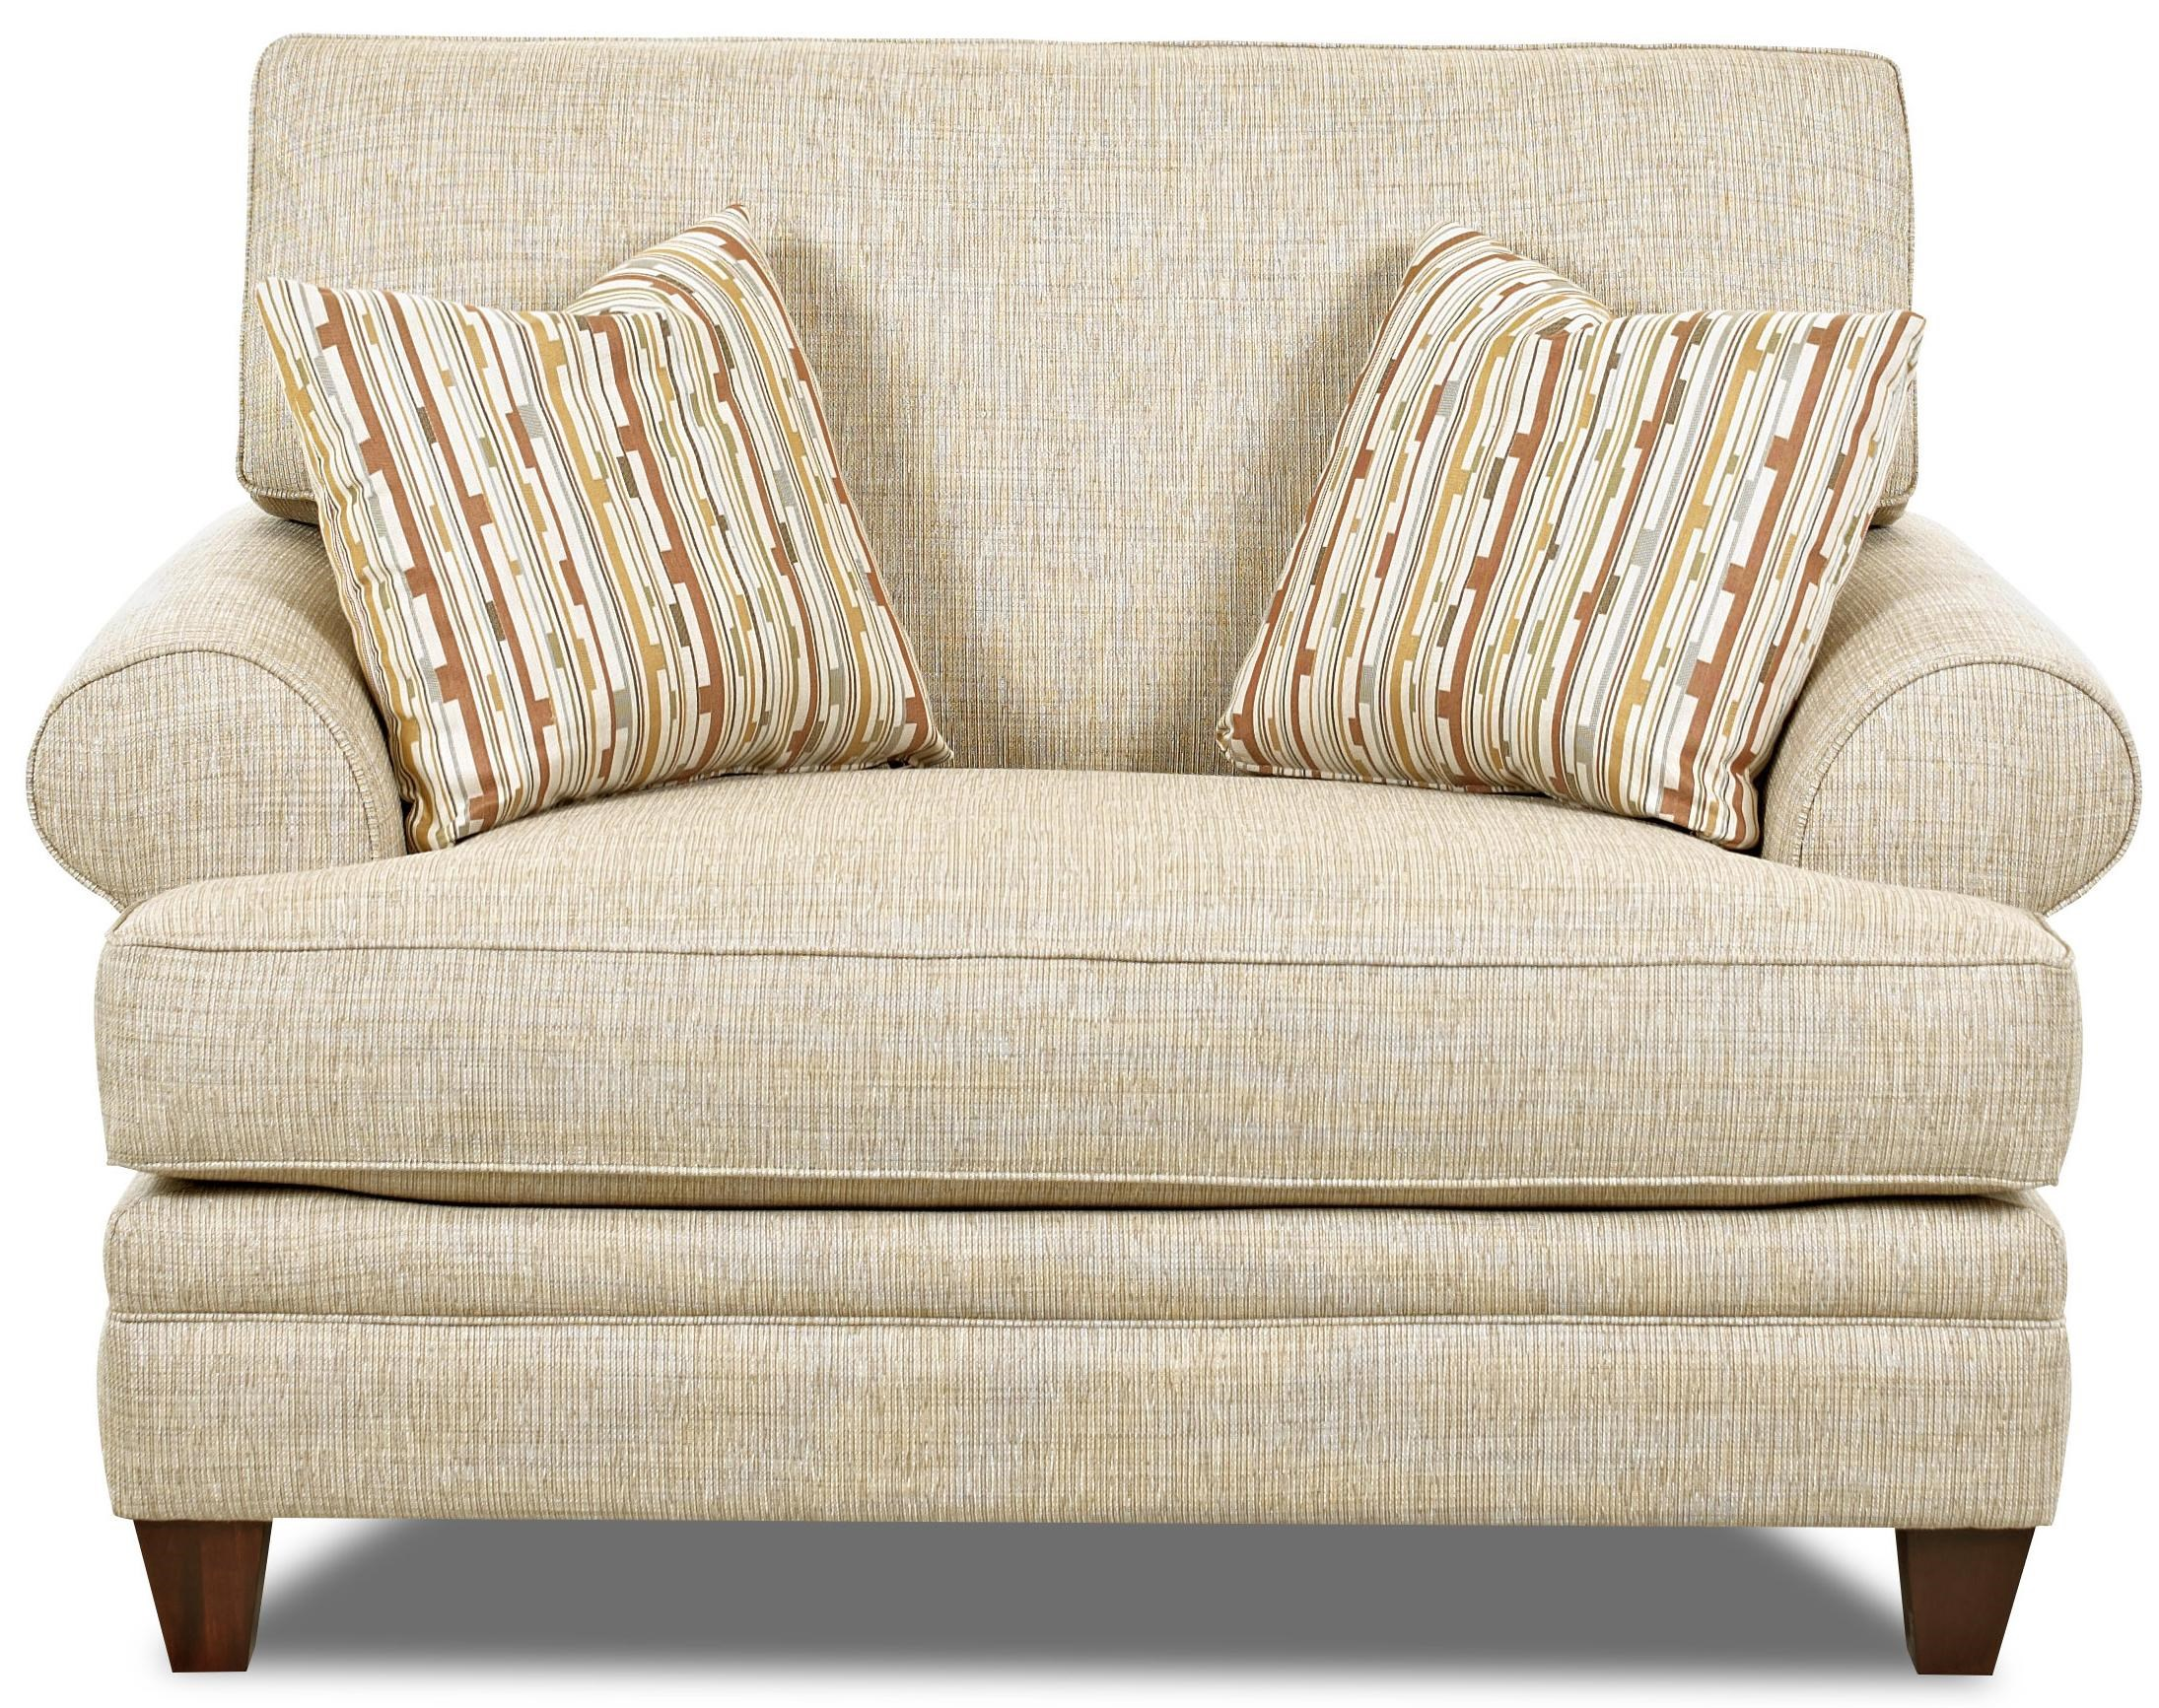 Klaussner Fresno Transitional Oversized Chair With Accent Pillows Wayside Furniture Chair A Half